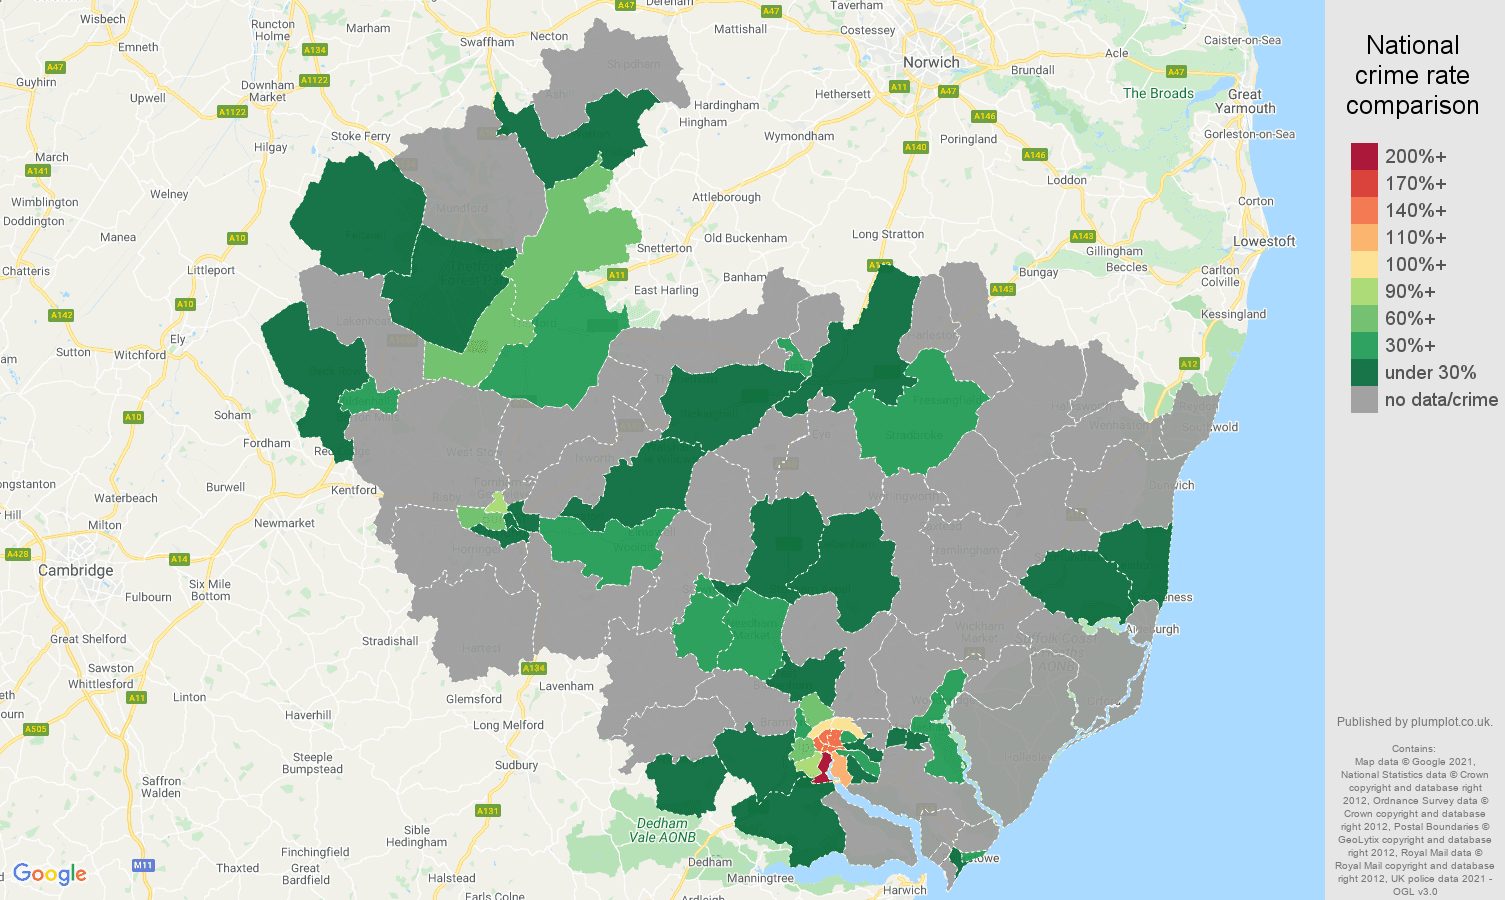 Ipswich robbery crime rate comparison map